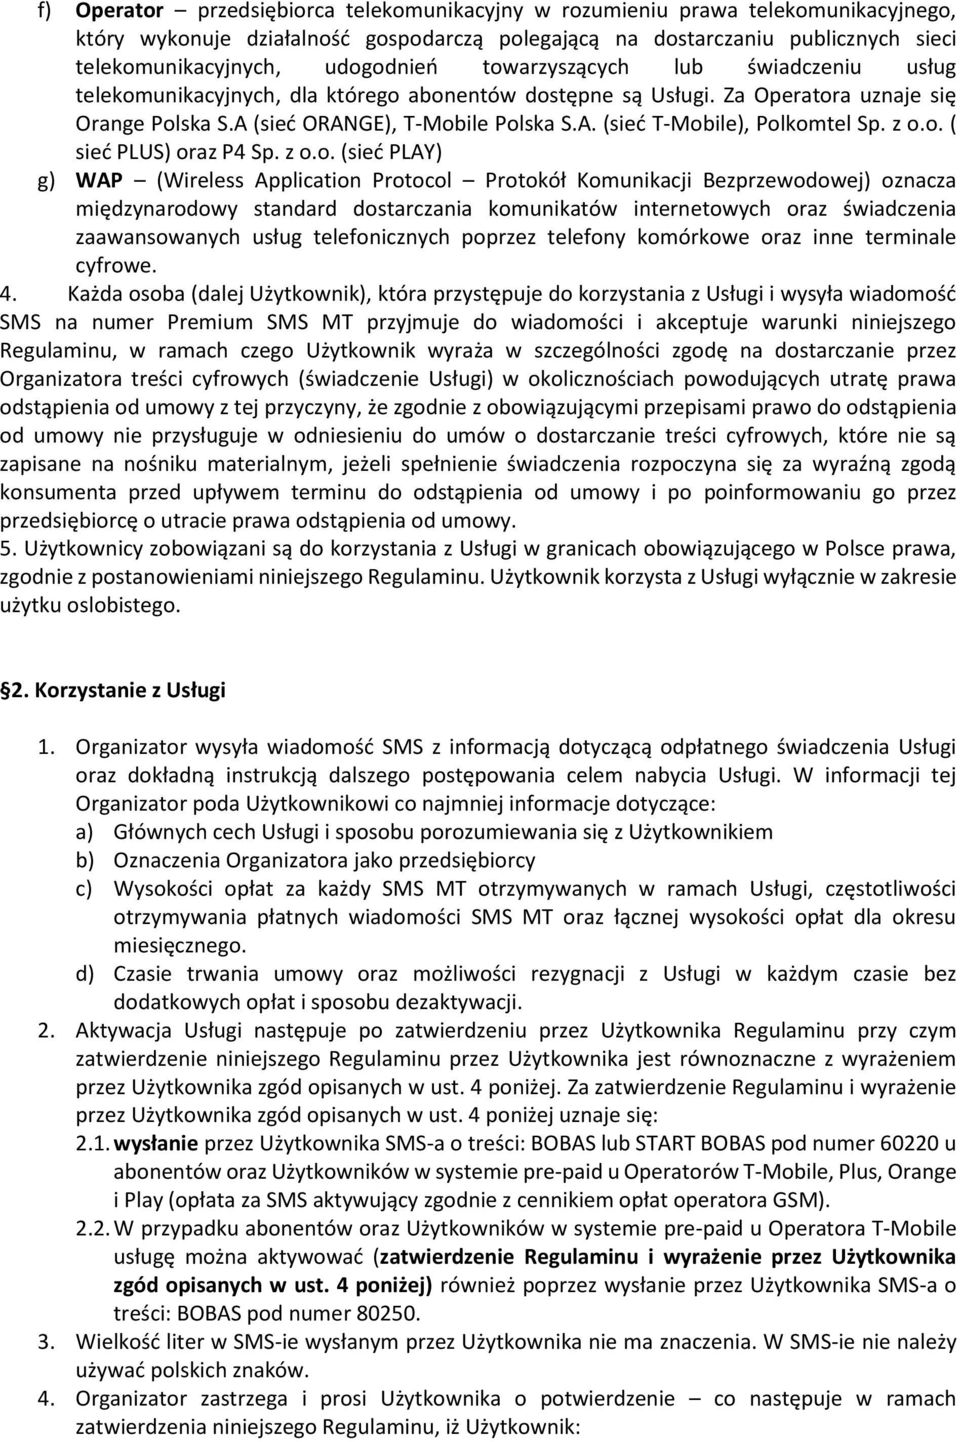 z o.o. ( sieć PLUS) oraz P4 Sp. z o.o. (sieć PLAY) g) WAP (Wireless Application Protocol Protokół Komunikacji Bezprzewodowej) oznacza międzynarodowy standard dostarczania komunikatów internetowych